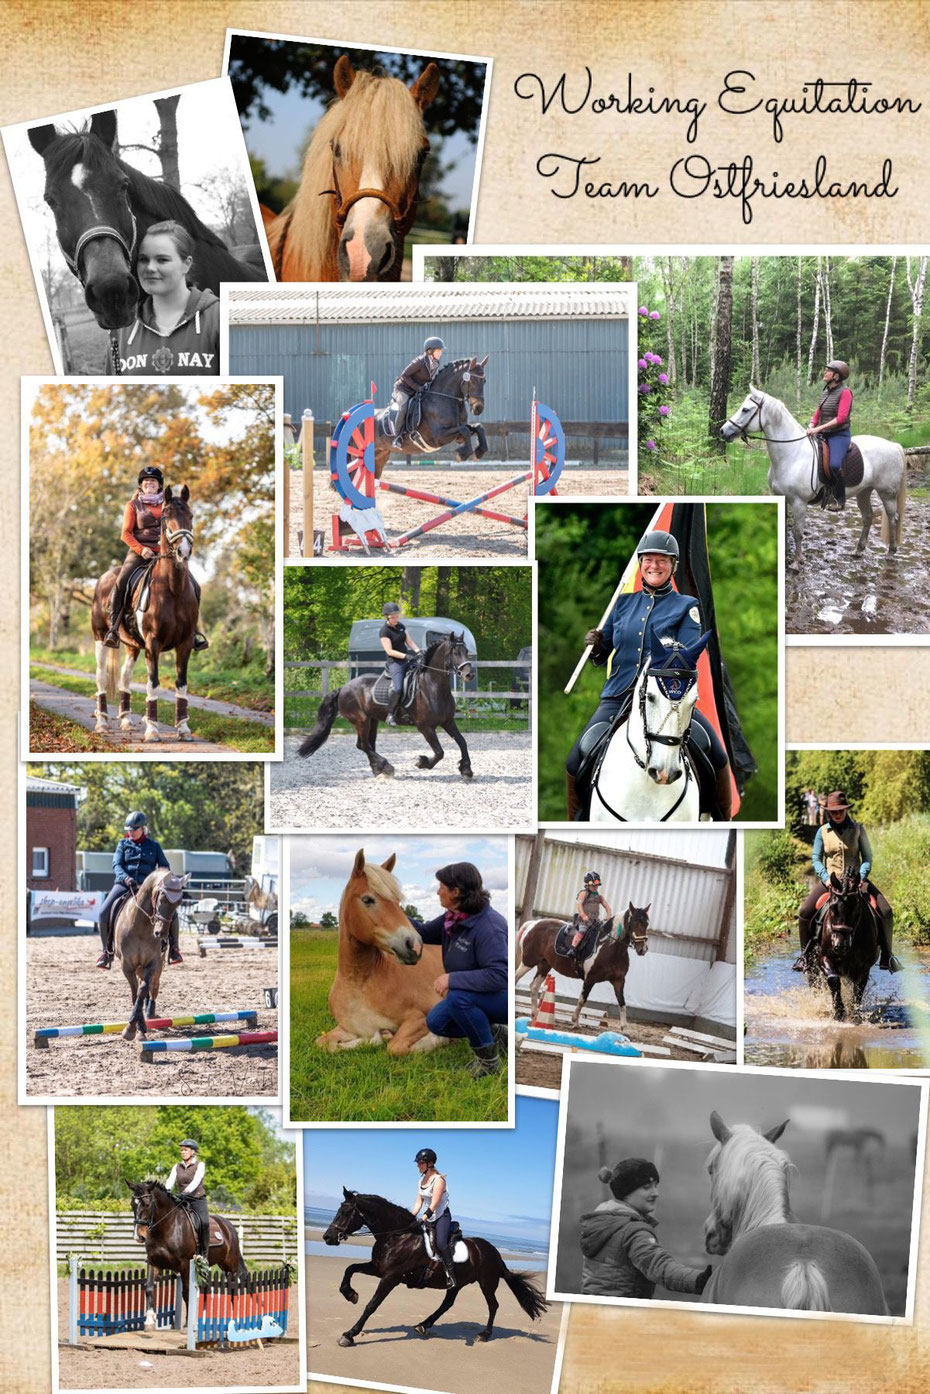 Working Equitation Team Ostfriesland